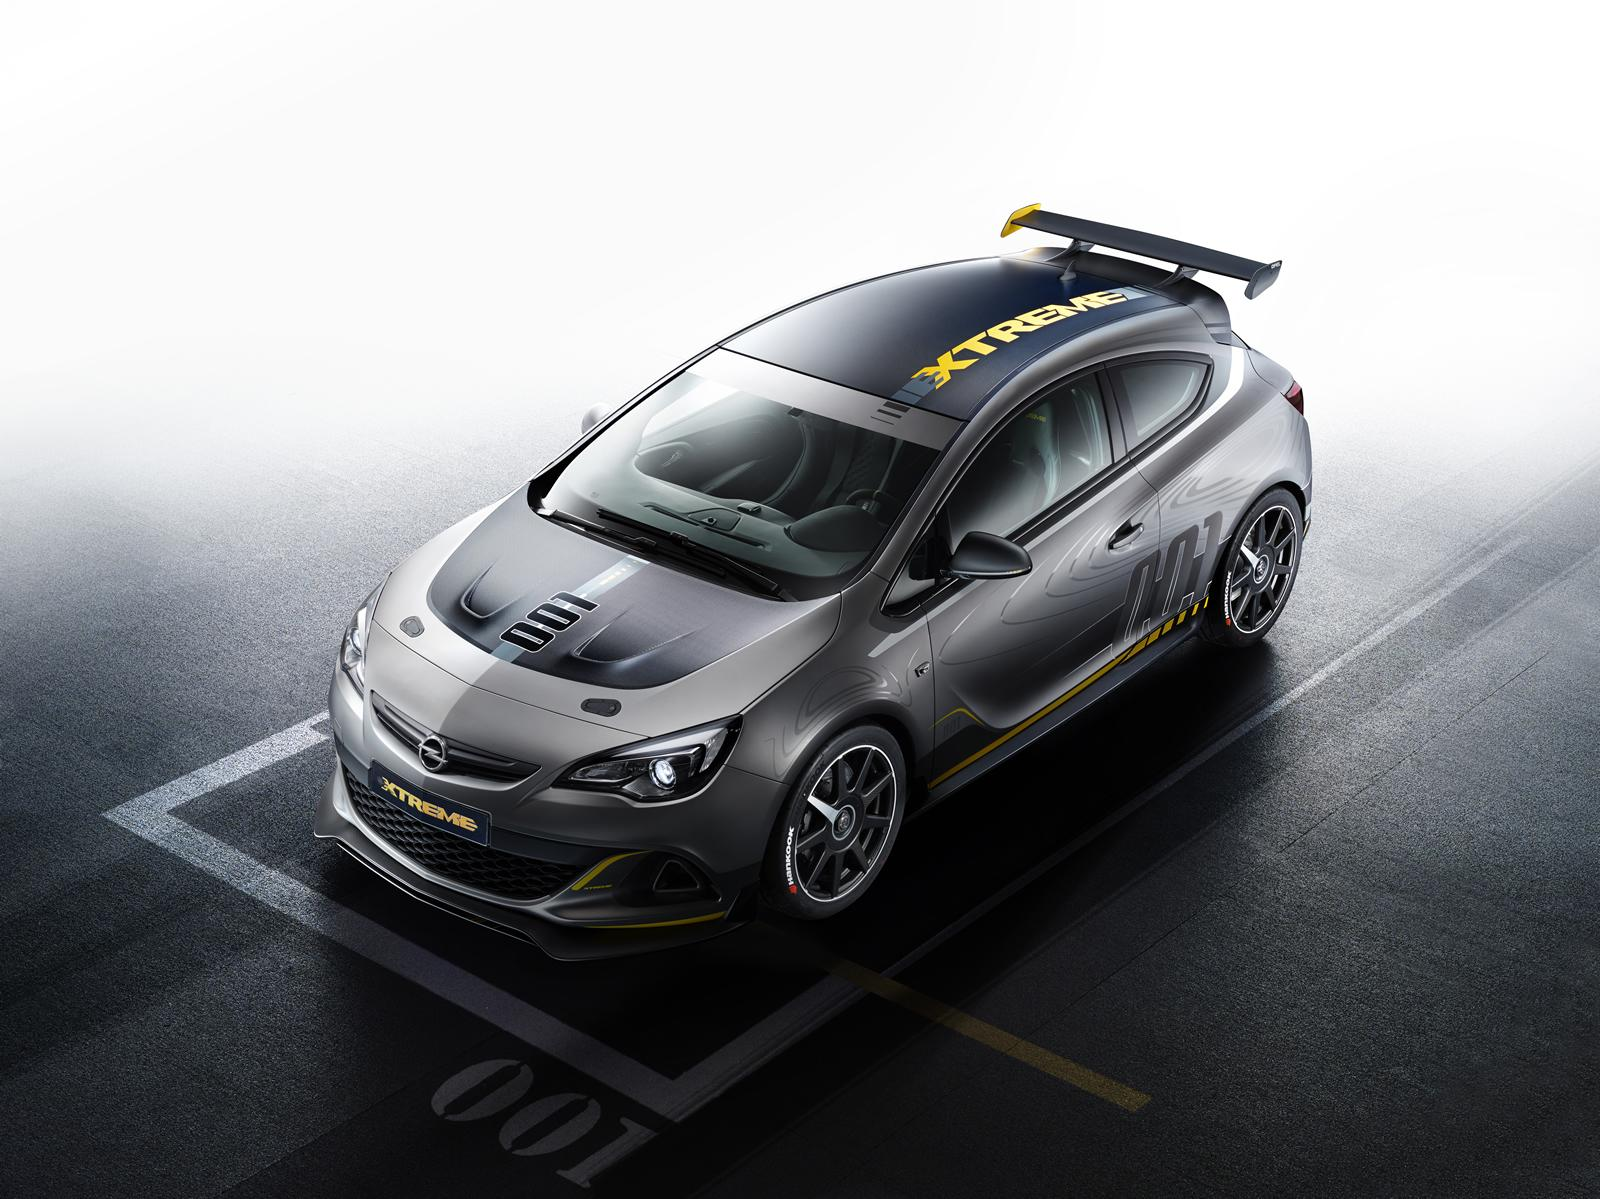 Auto Driving Car >> Opel Astra OPC EXTREME: 300+ HP Hot Hatch with Carbon ...